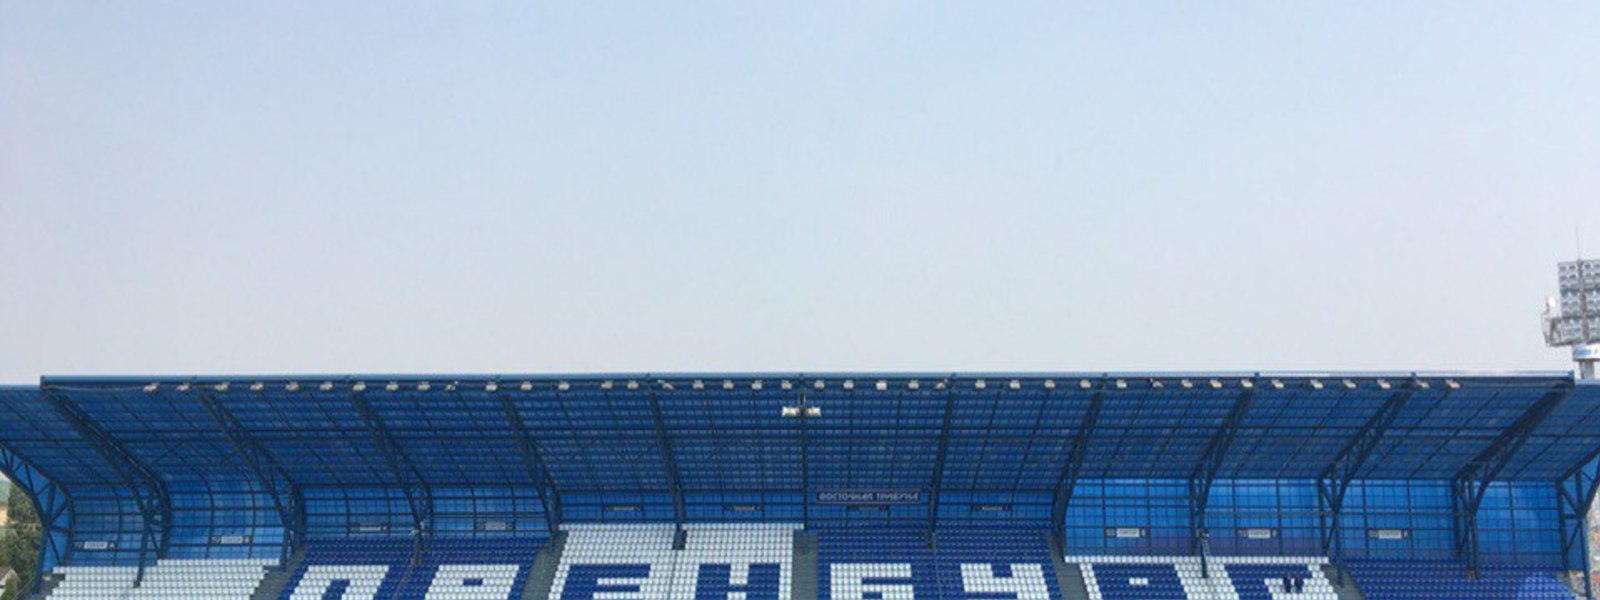 Very big orenburg stadium